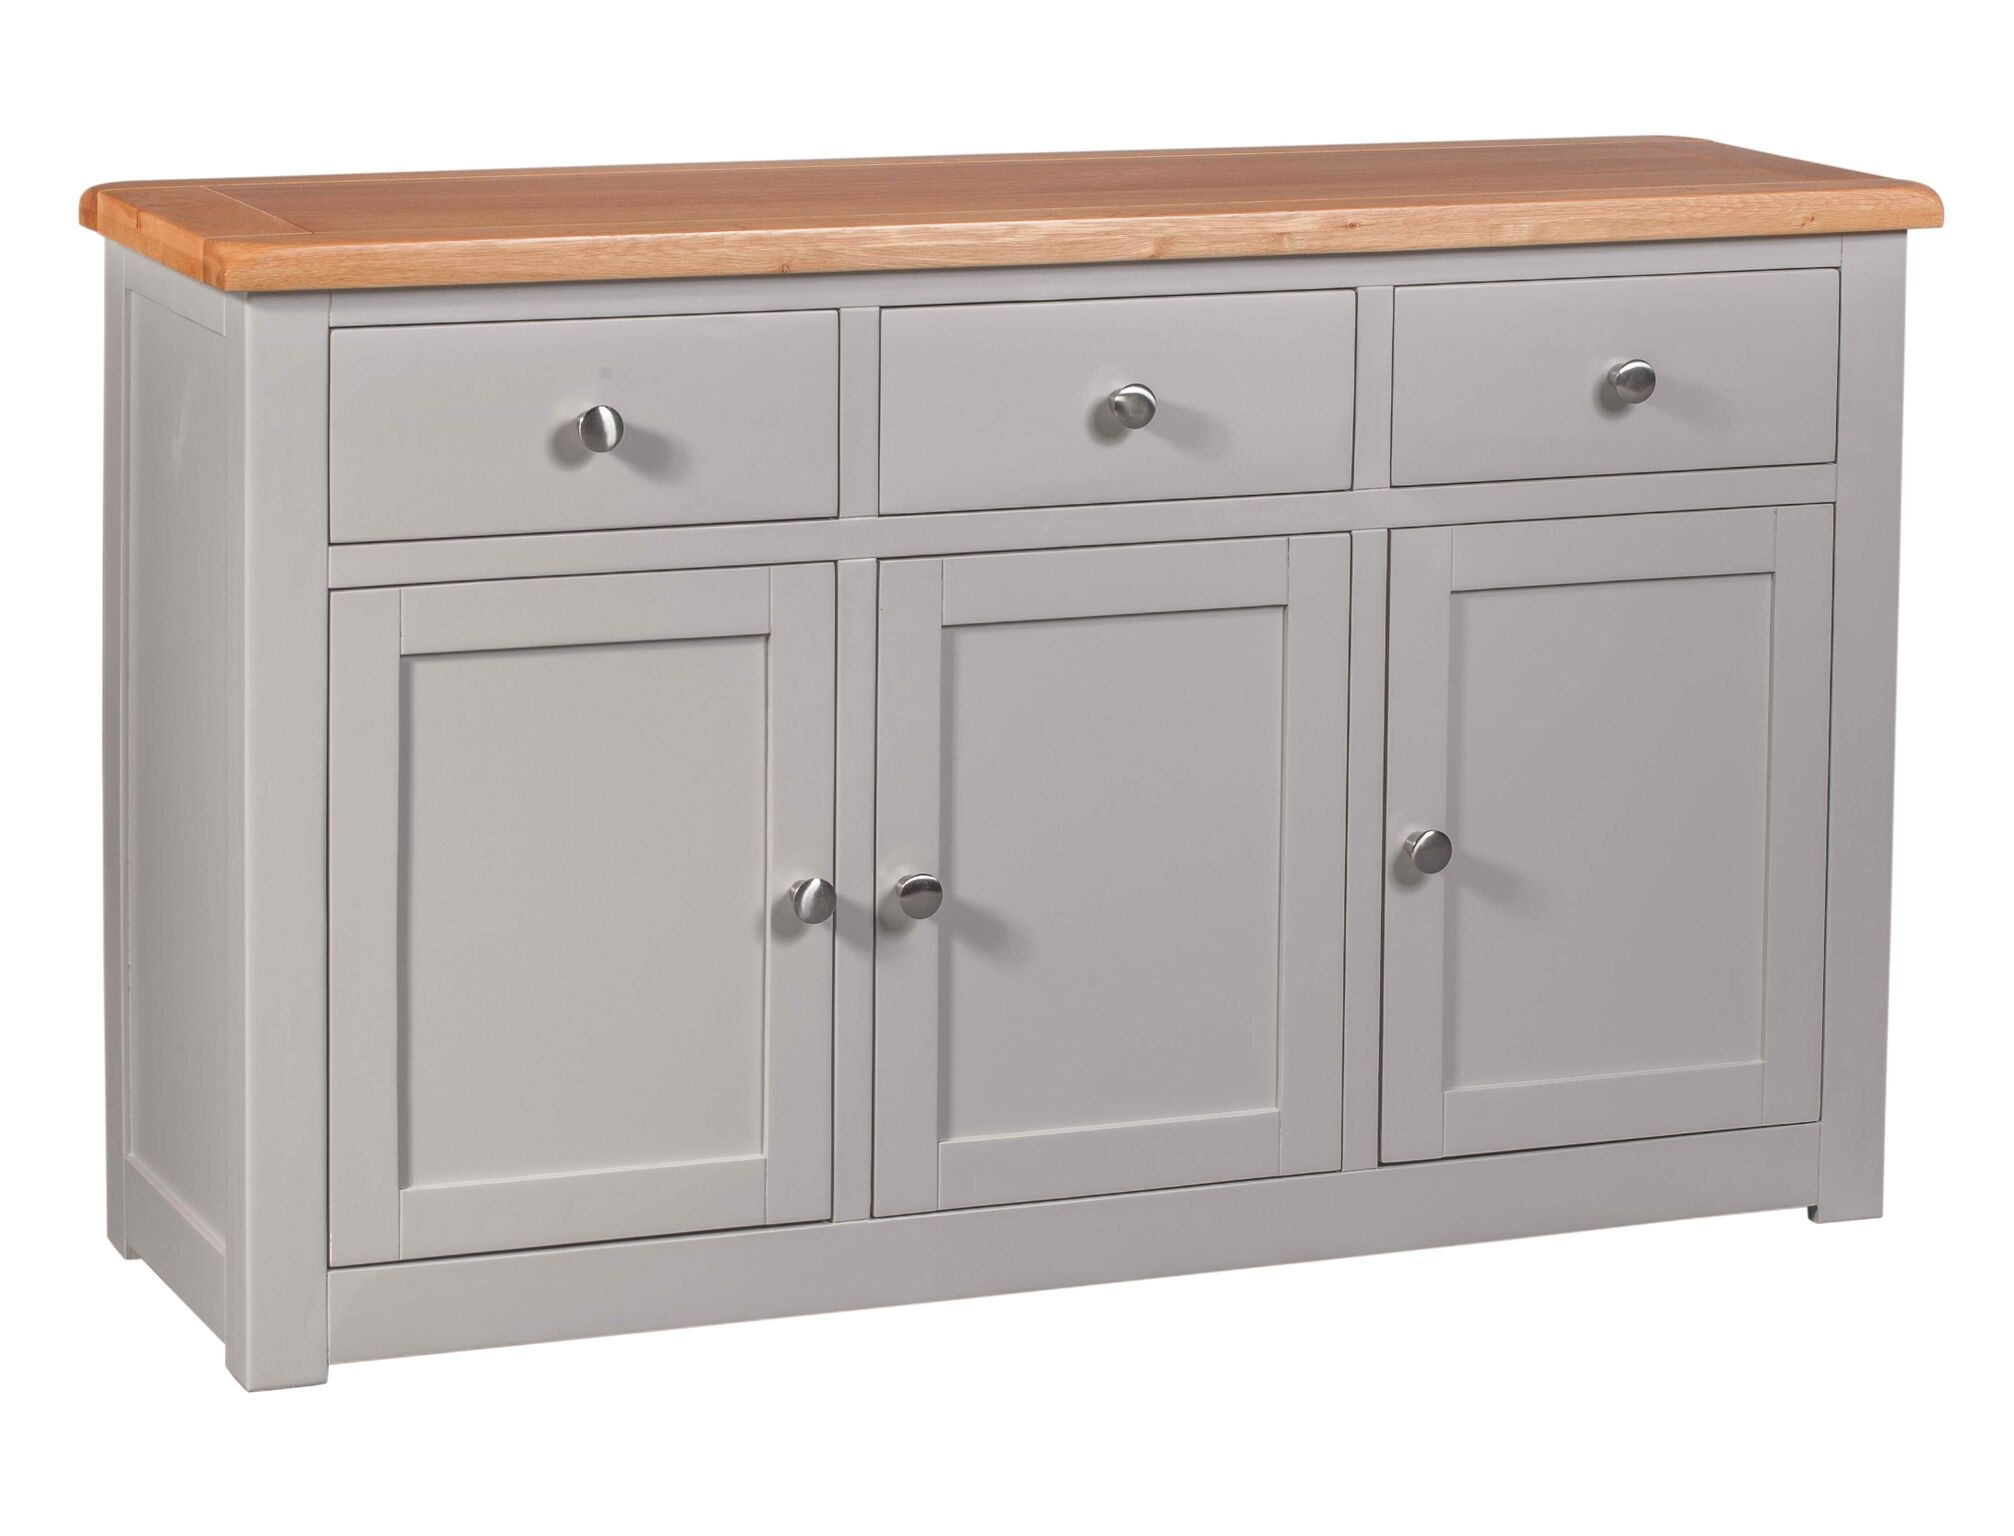 Painted Sideboards   Modern Dining With Norwich Furniture In Logan Sideboards (Photo 23 of 30)